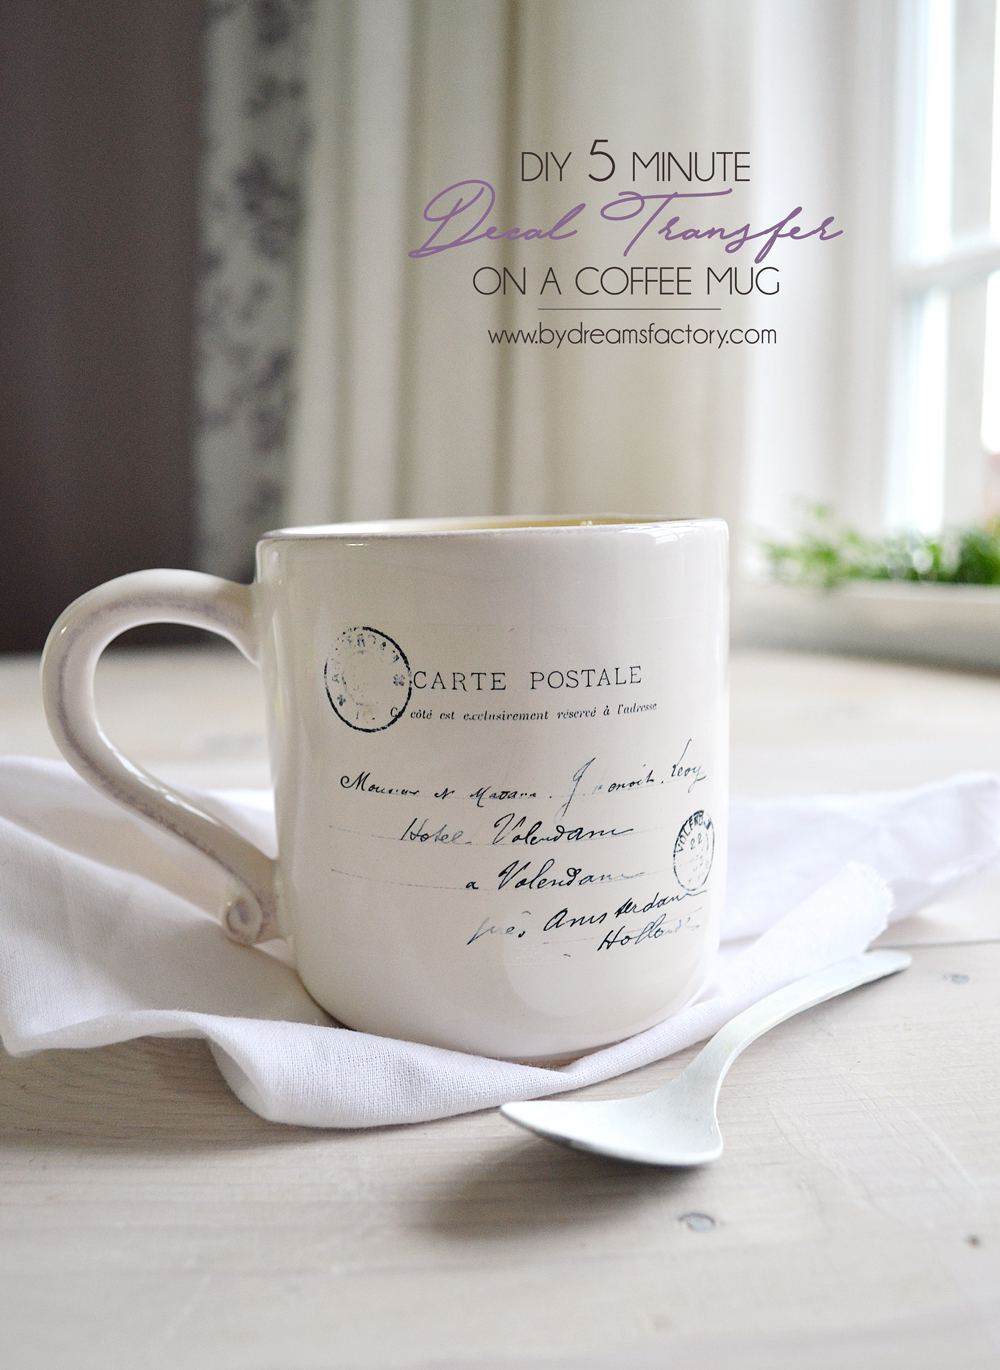 DIY 5 minute decal transfer on a coffee mug - Dreams Factory